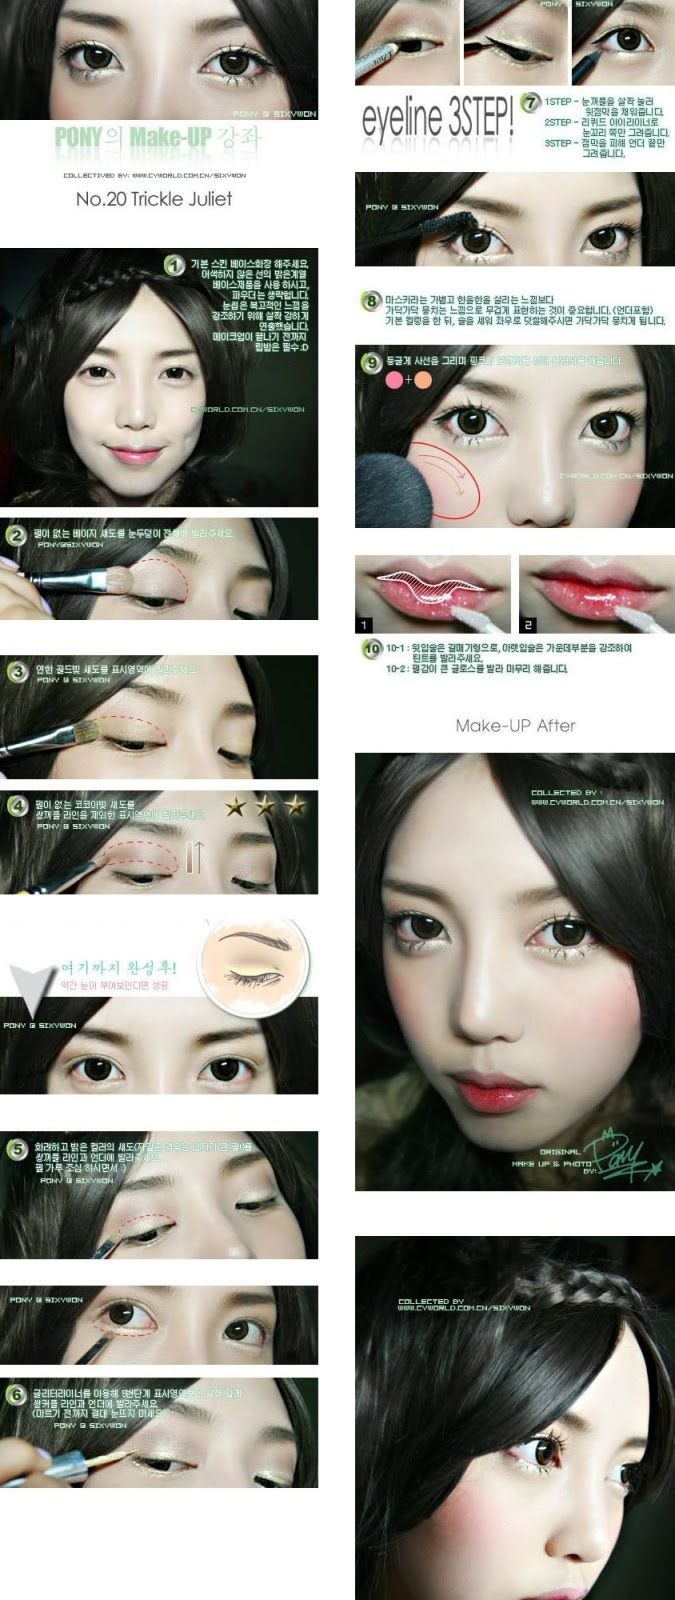 Makeup Tutorial By Ulzzang Pony  Trickle Juliet